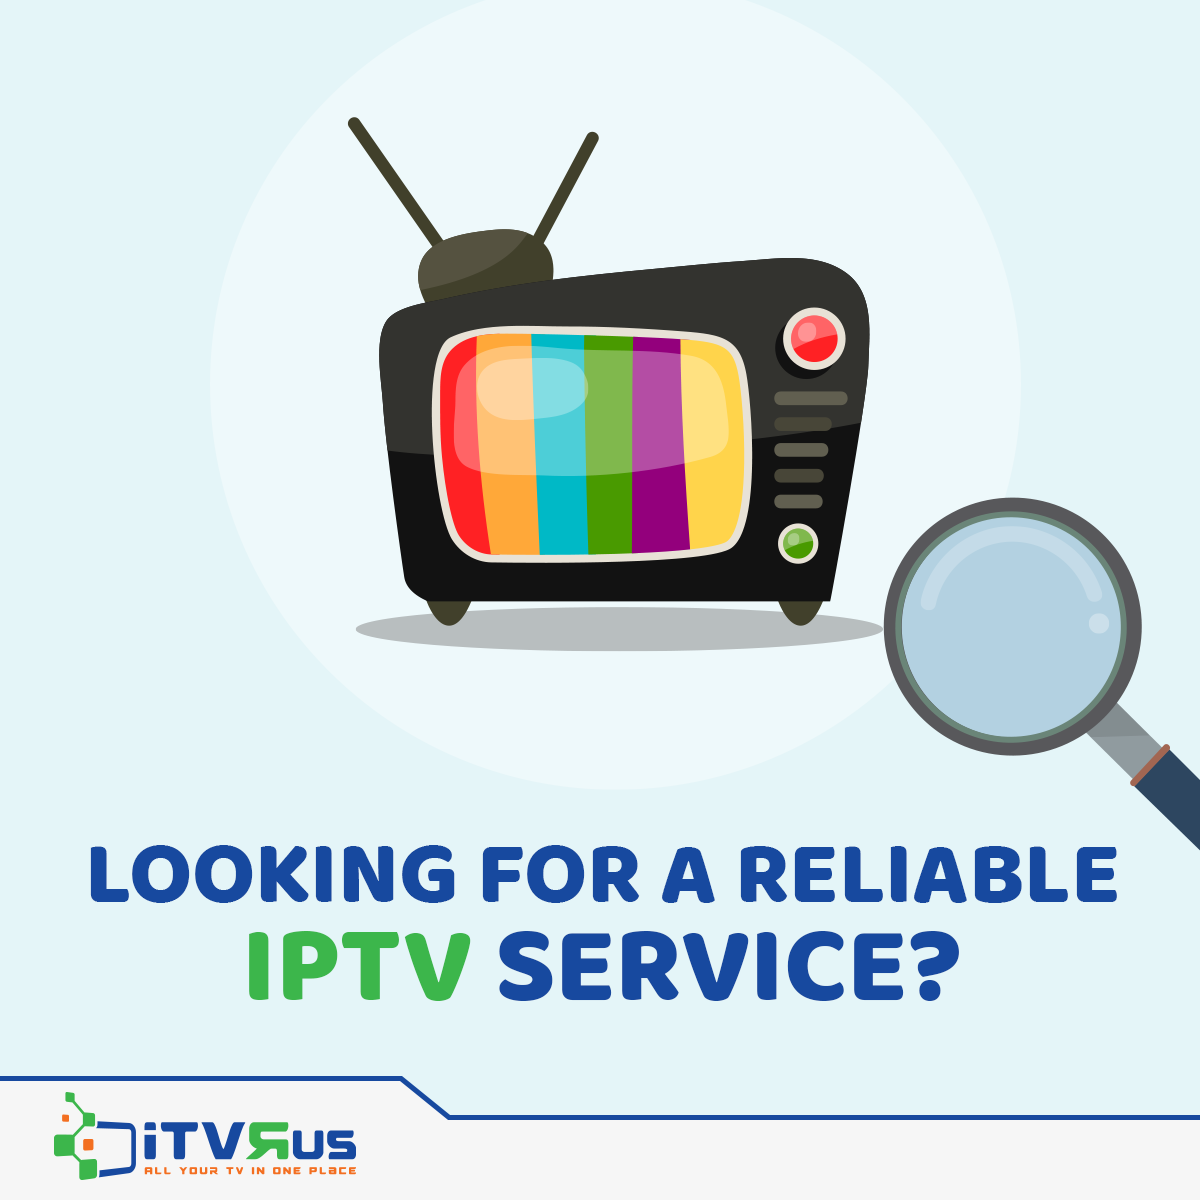 Stay Tuned for the Website! iptv itvrus flawlessiptv